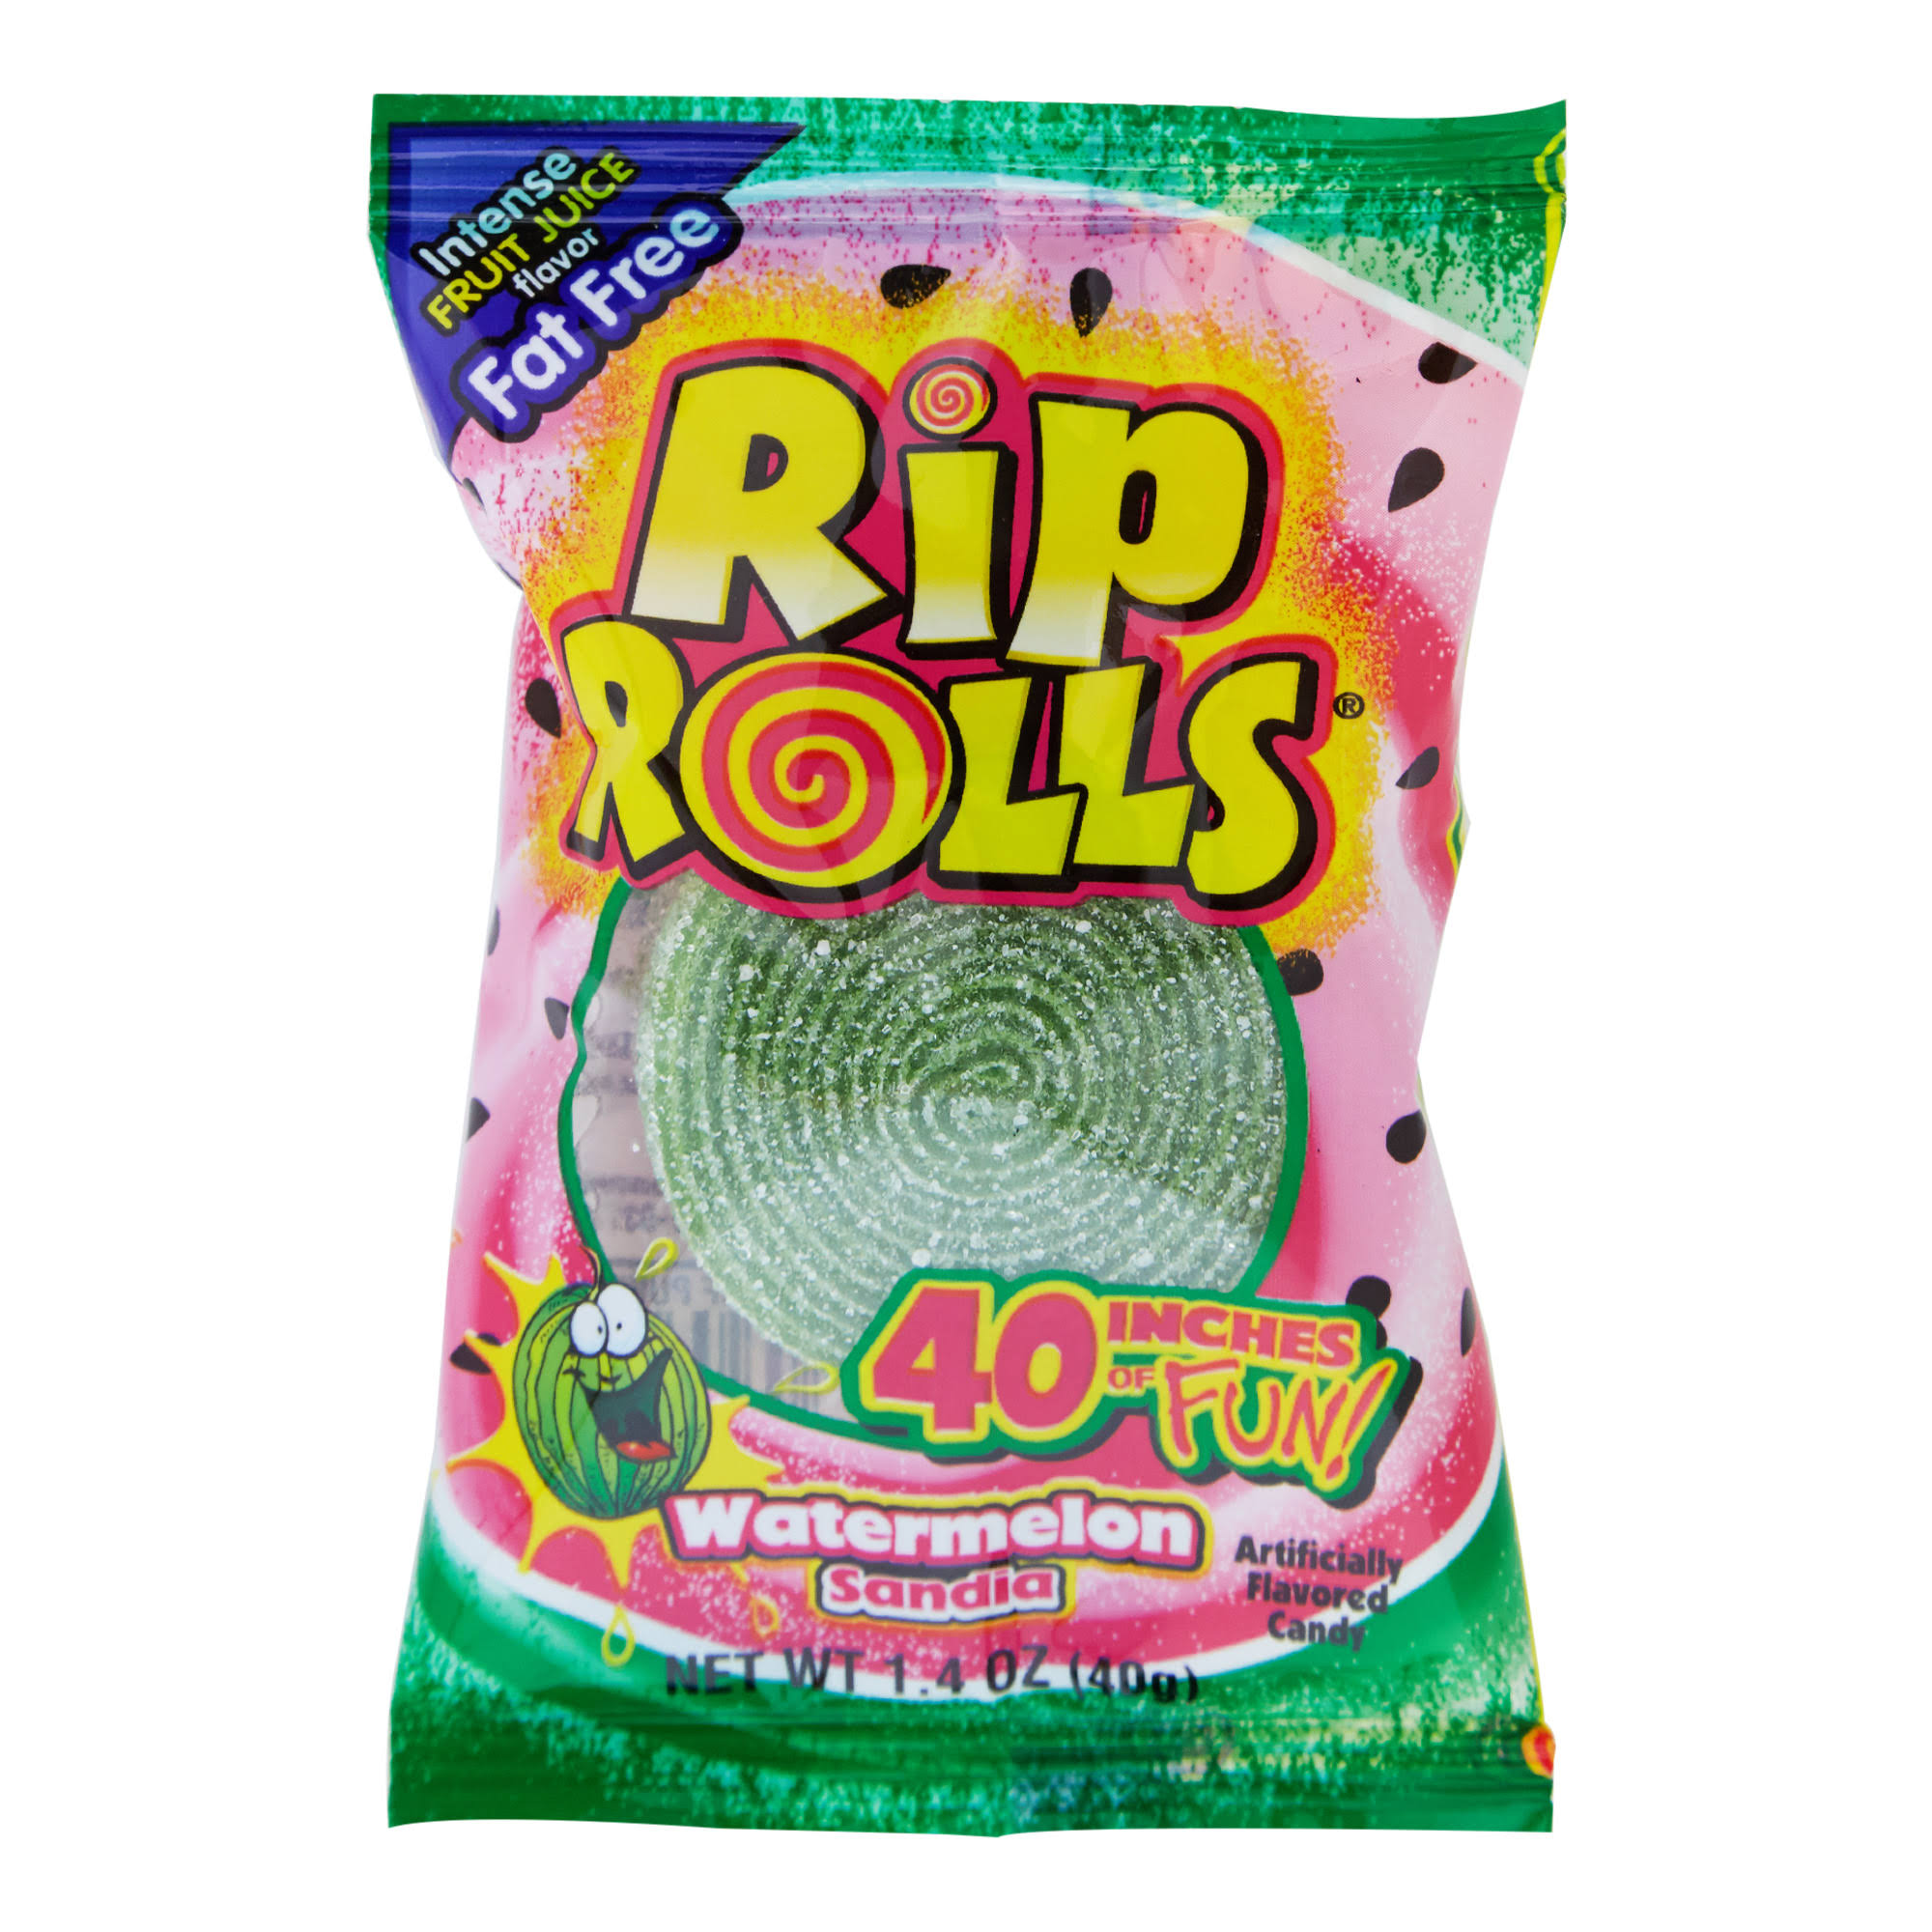 "Rip Rolls 40"" Candy, Watermelon Sandia - 1.4 oz packet"